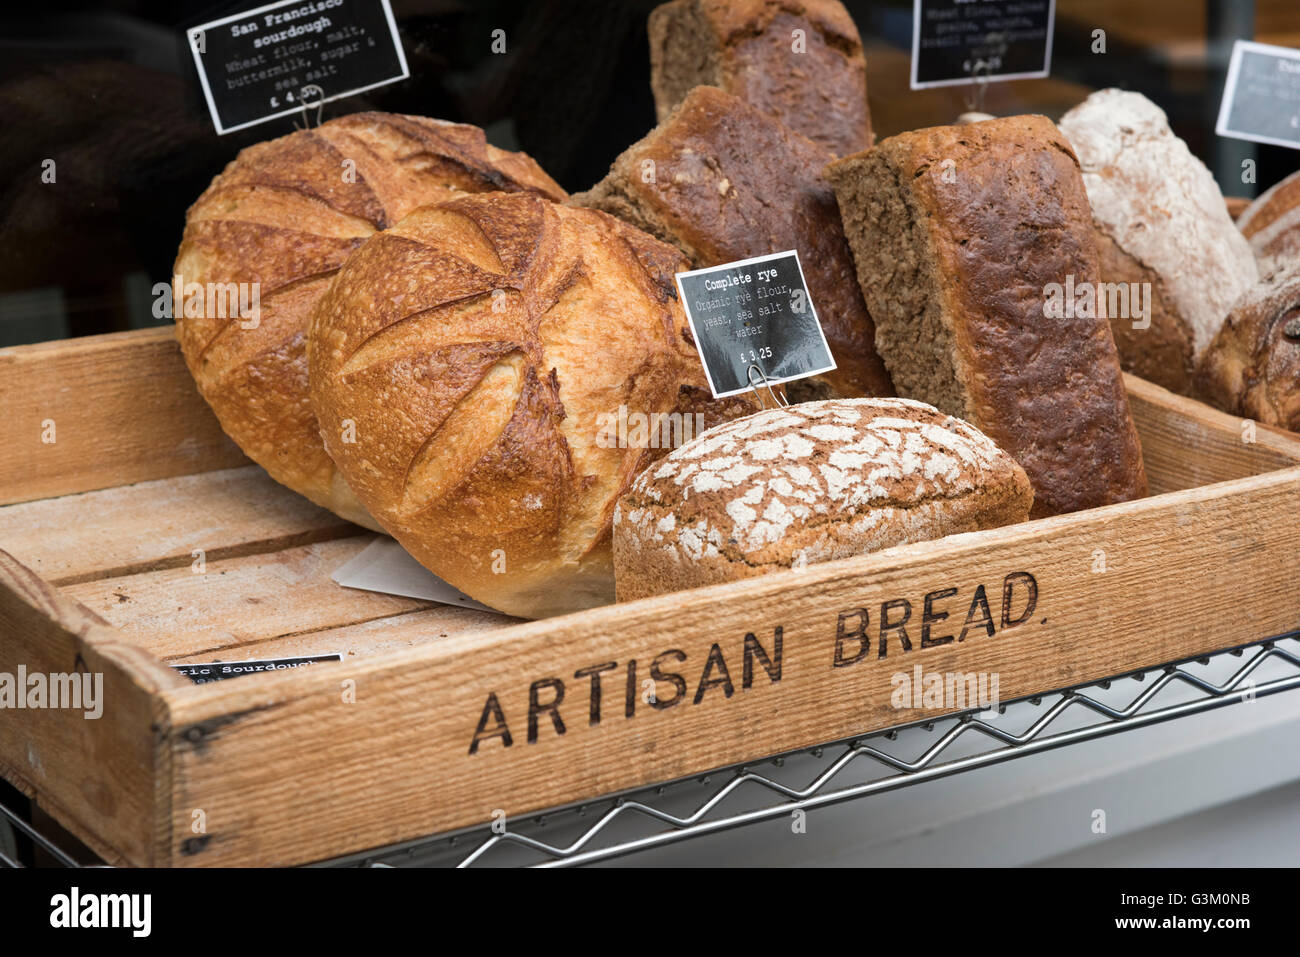 A wooden tray full of artisan bread for sale in the UK - Stock Image